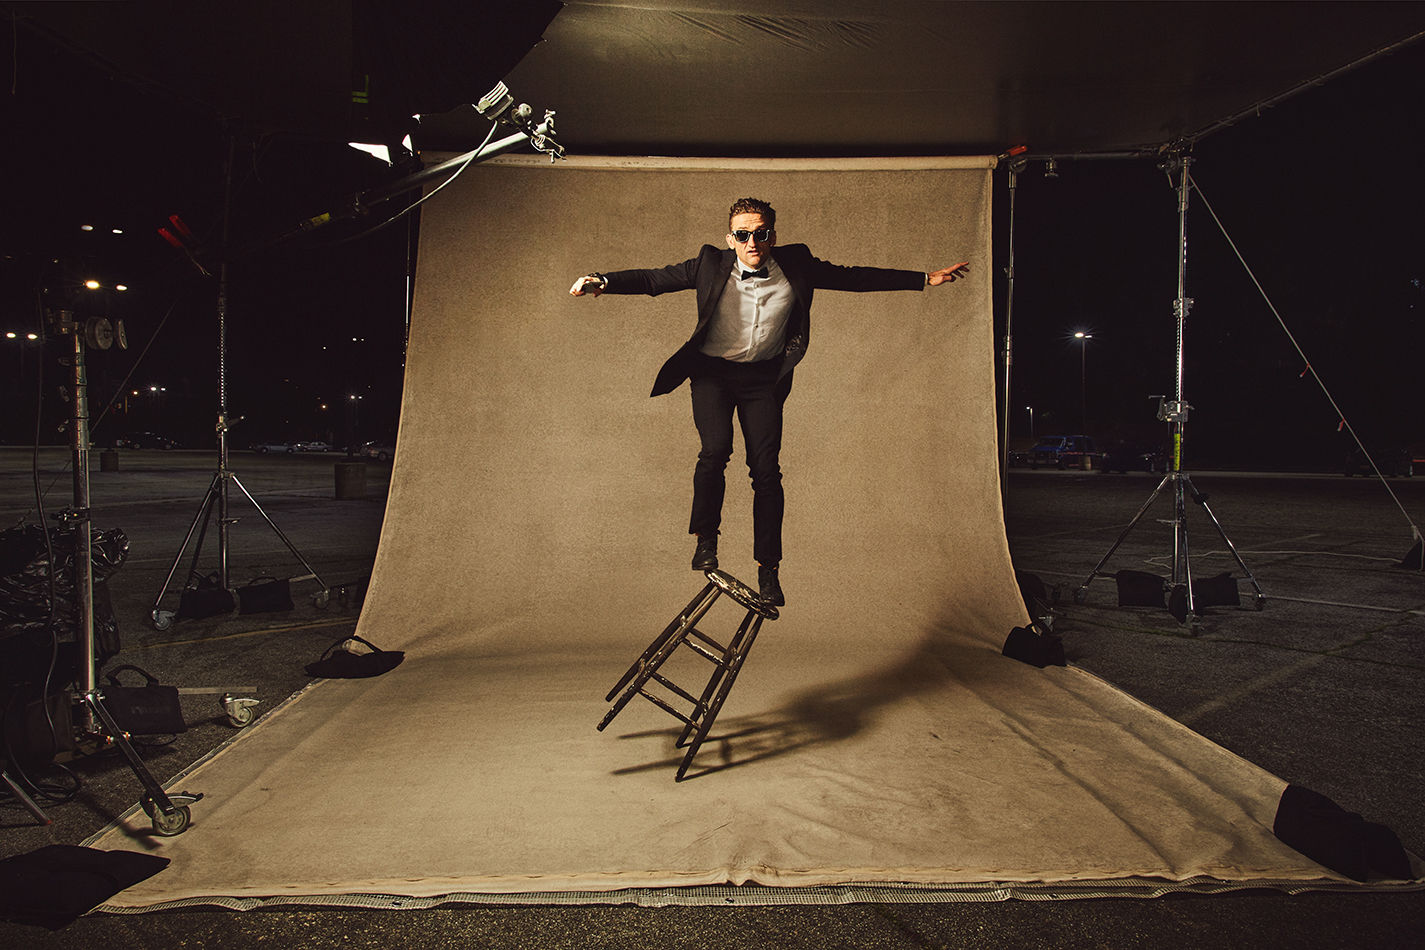 Christaan Felber c/o GIANT ARTISTS  shot YouTube personality and filmmaker Casey Neistat for Samsung's Oscars campaign